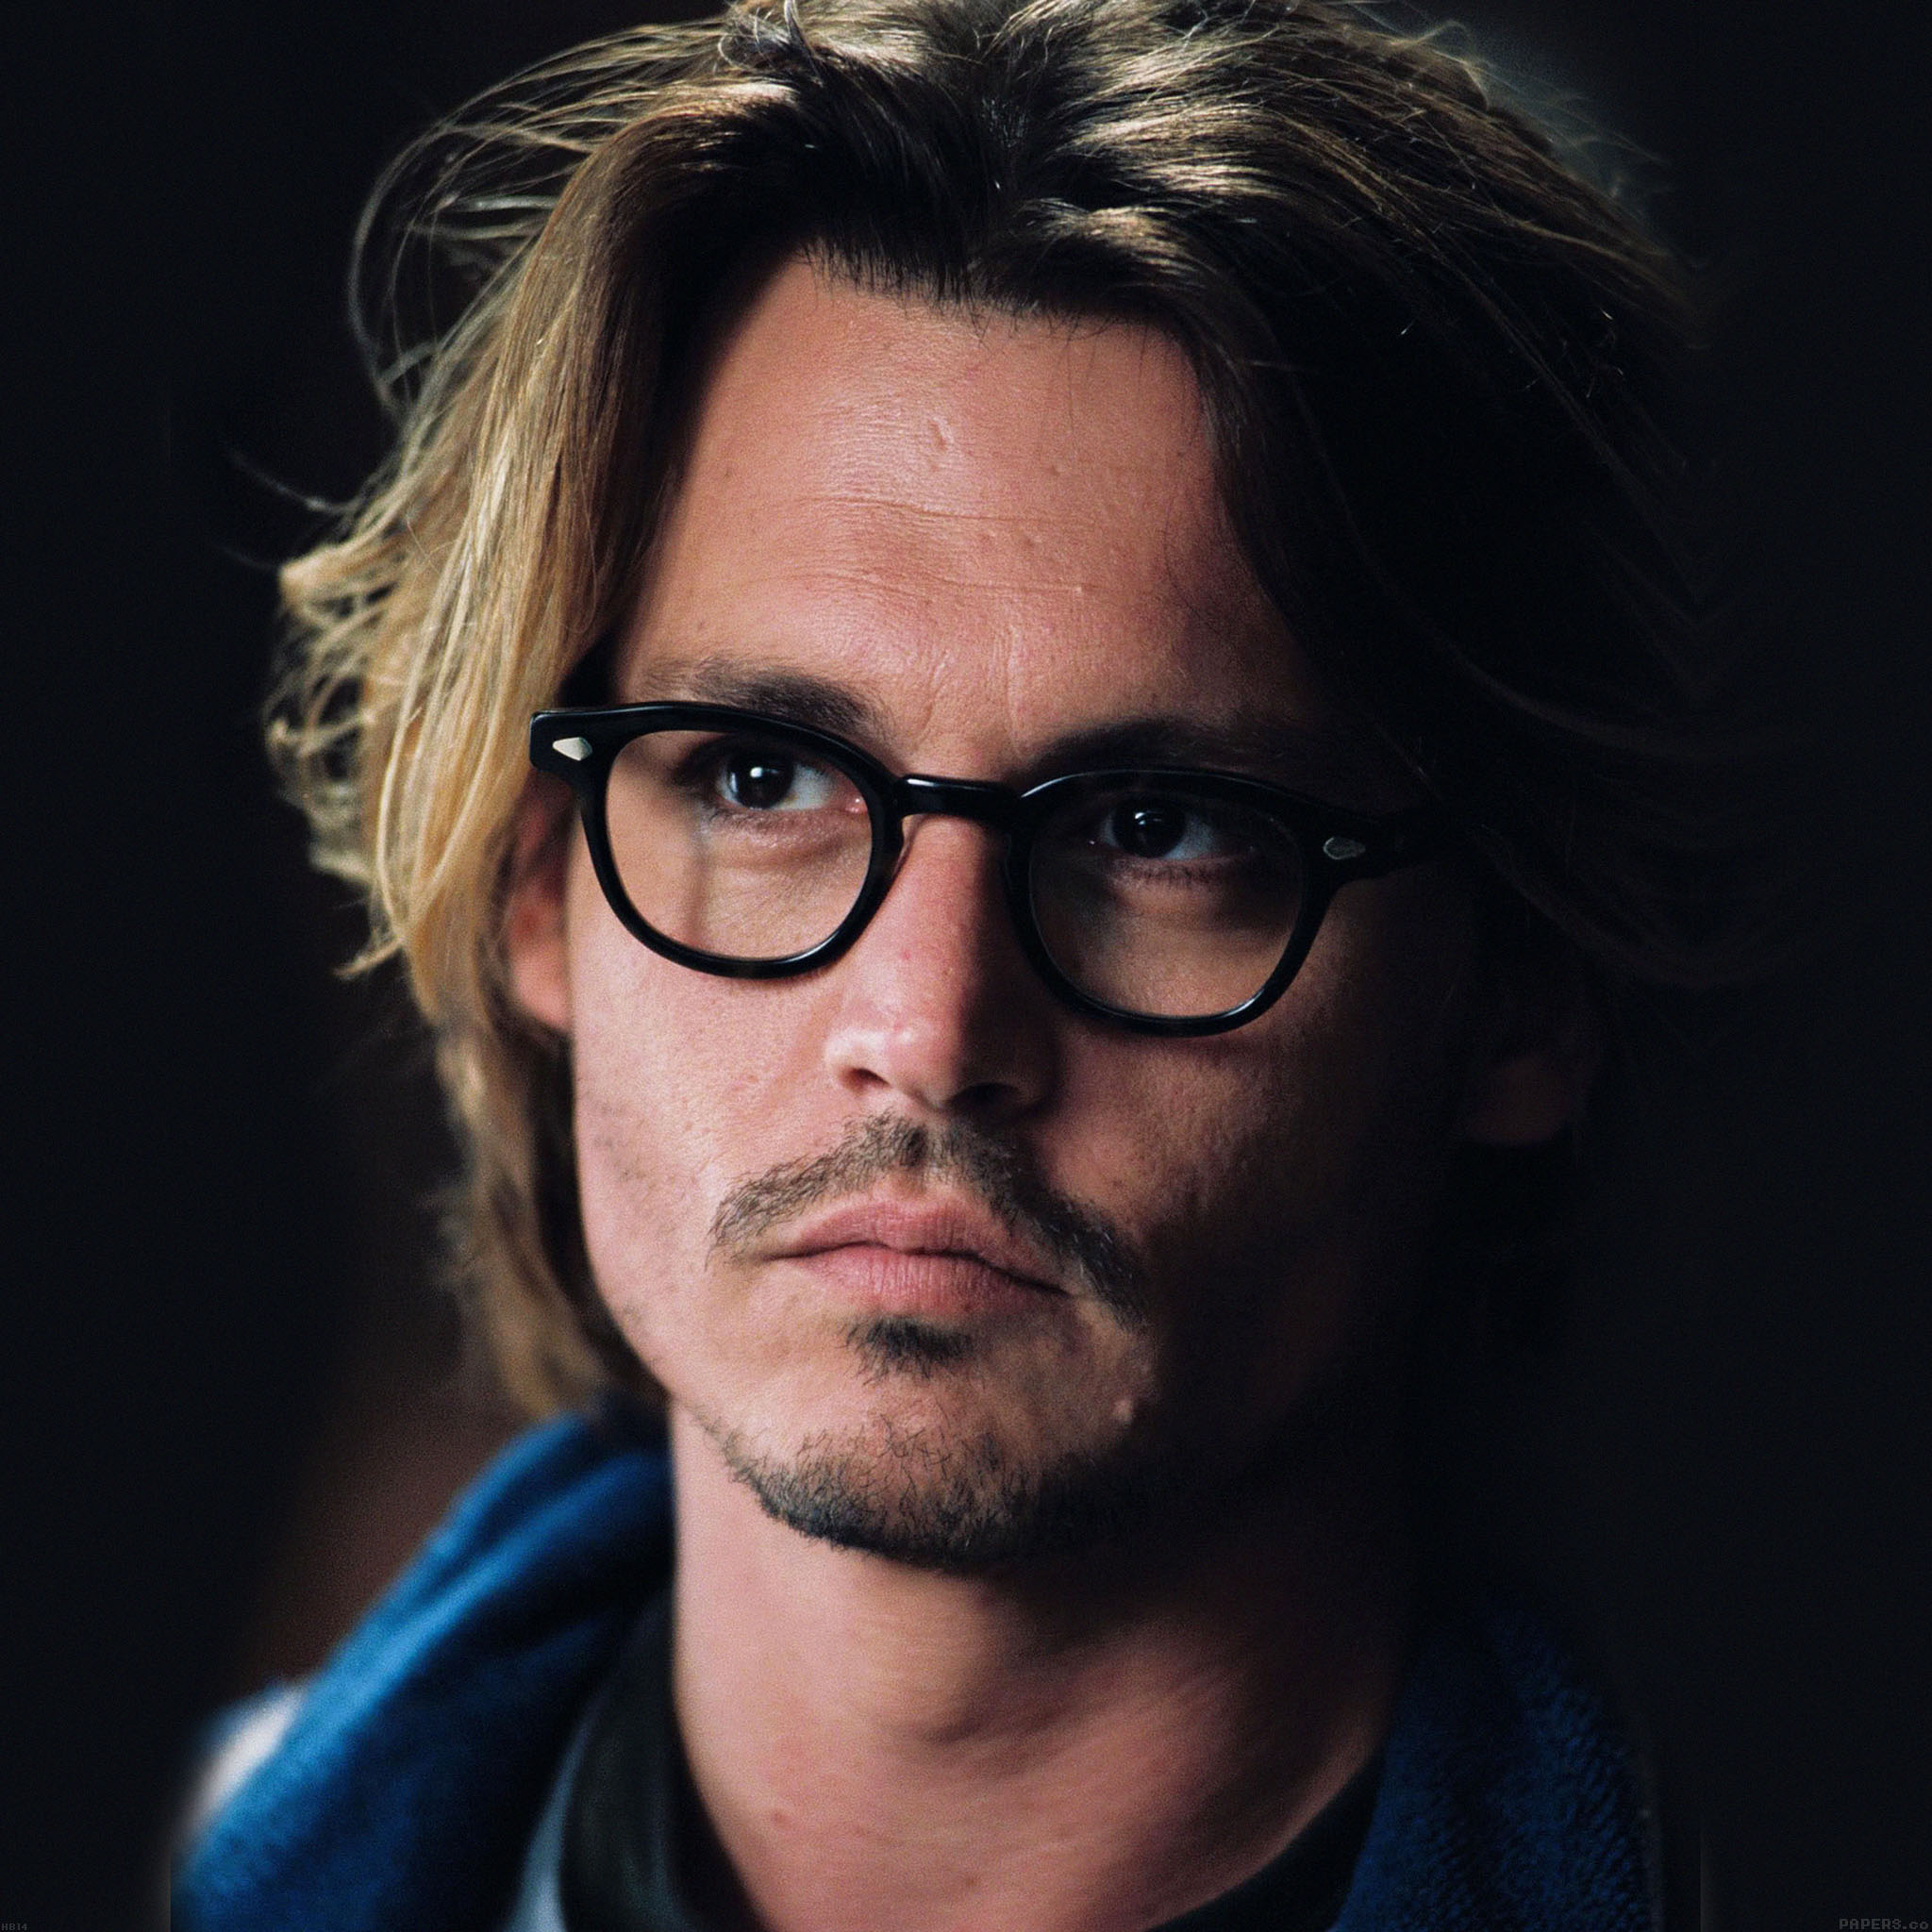 Johnny Depp: Hb14-wallpaper-johnny-depp-glass-film-actor-face